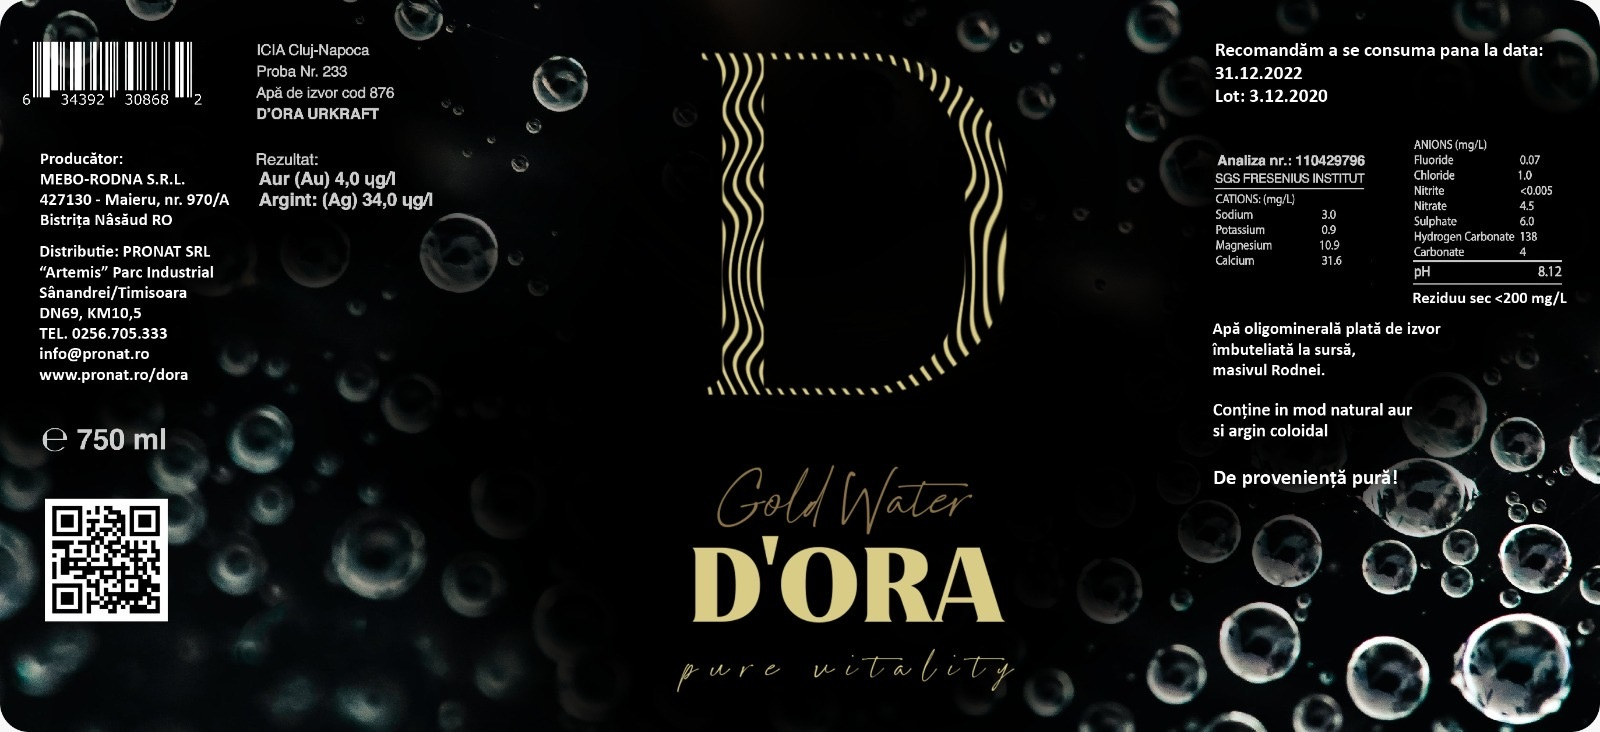 reBranding D'ORA packaging design PRONAT